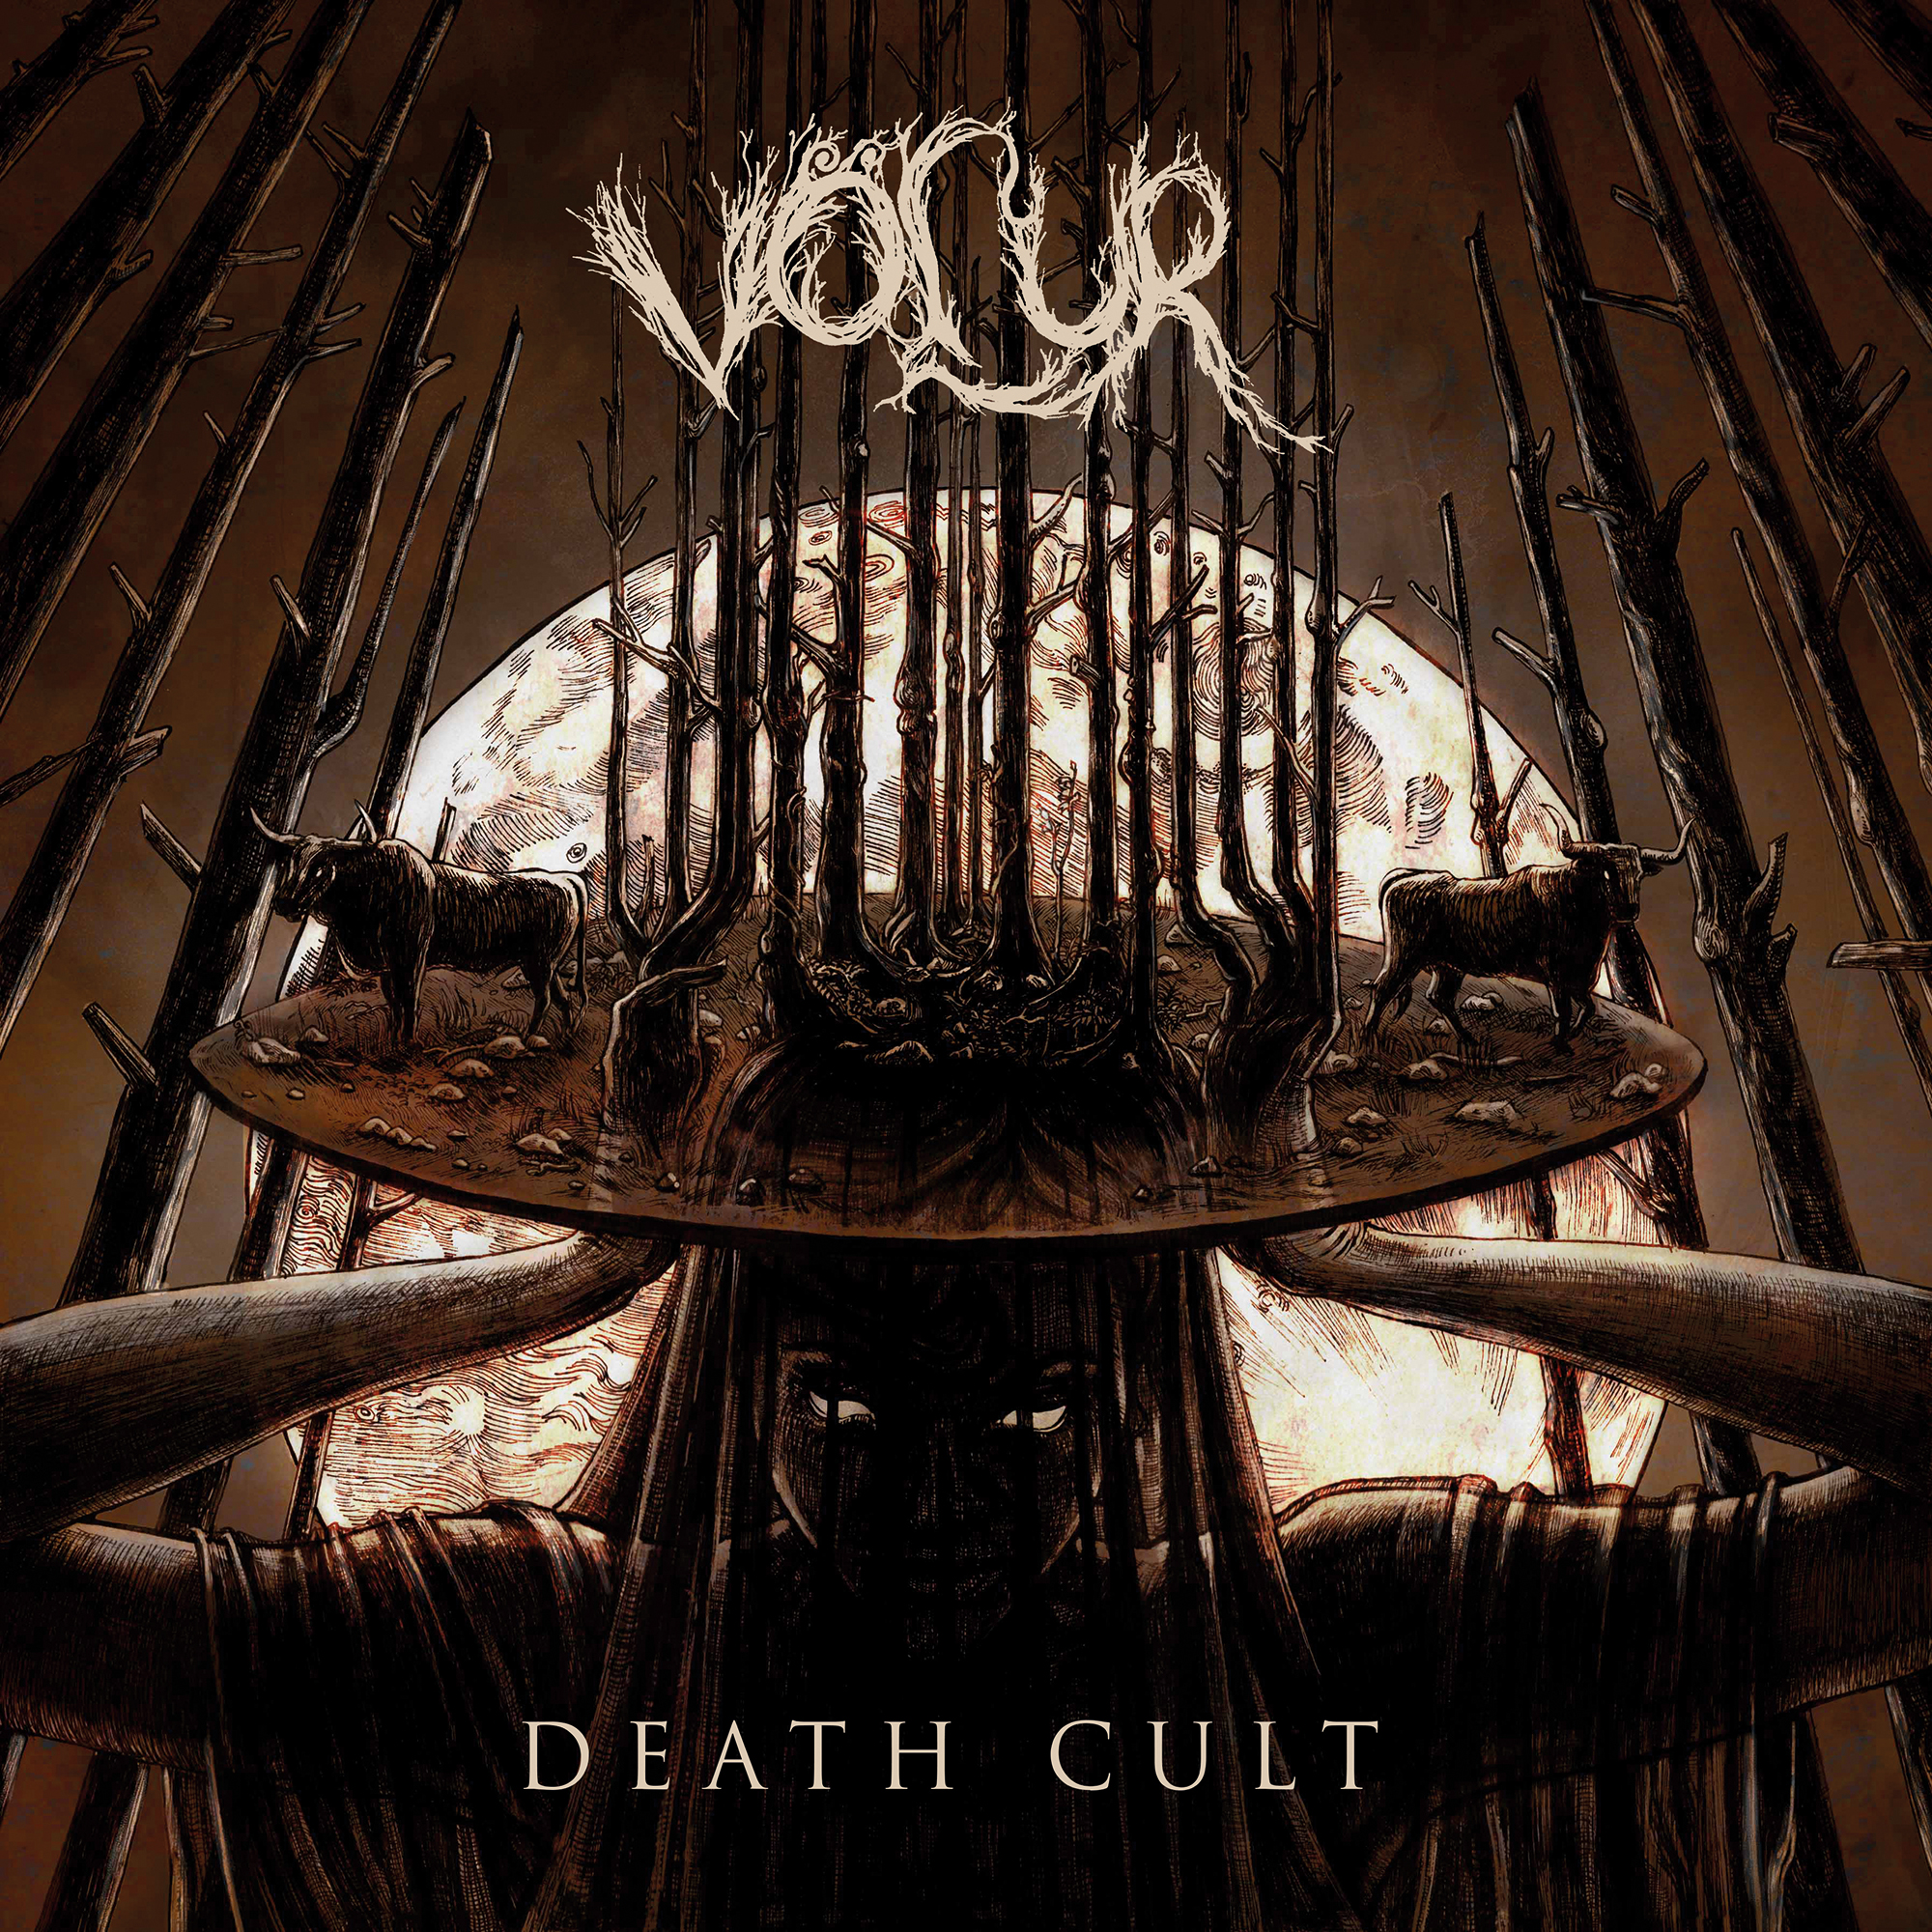 Völur death cult